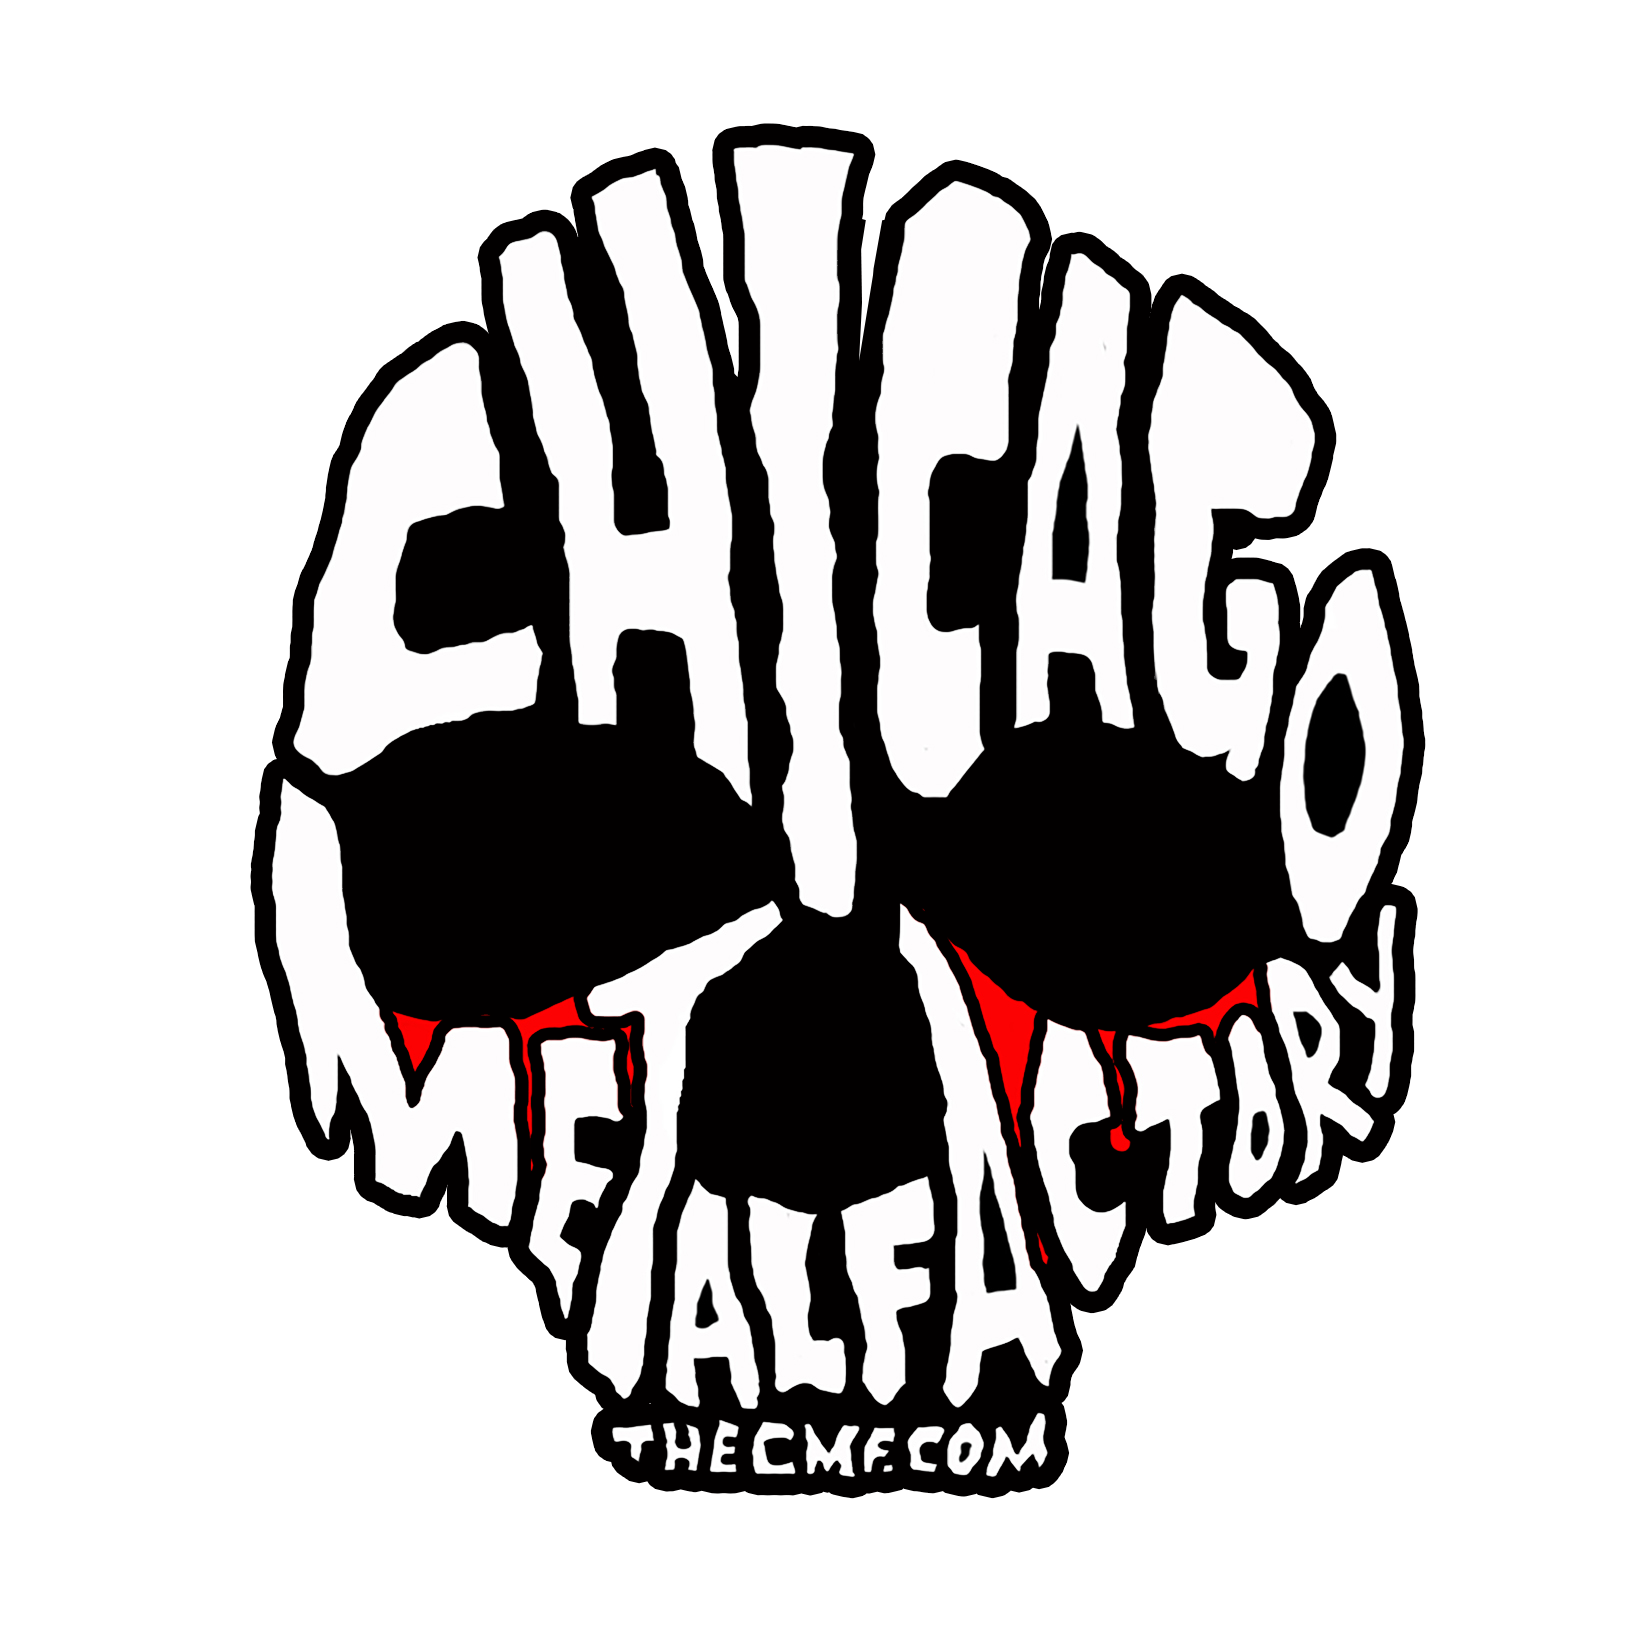 Chicago Metal Factory